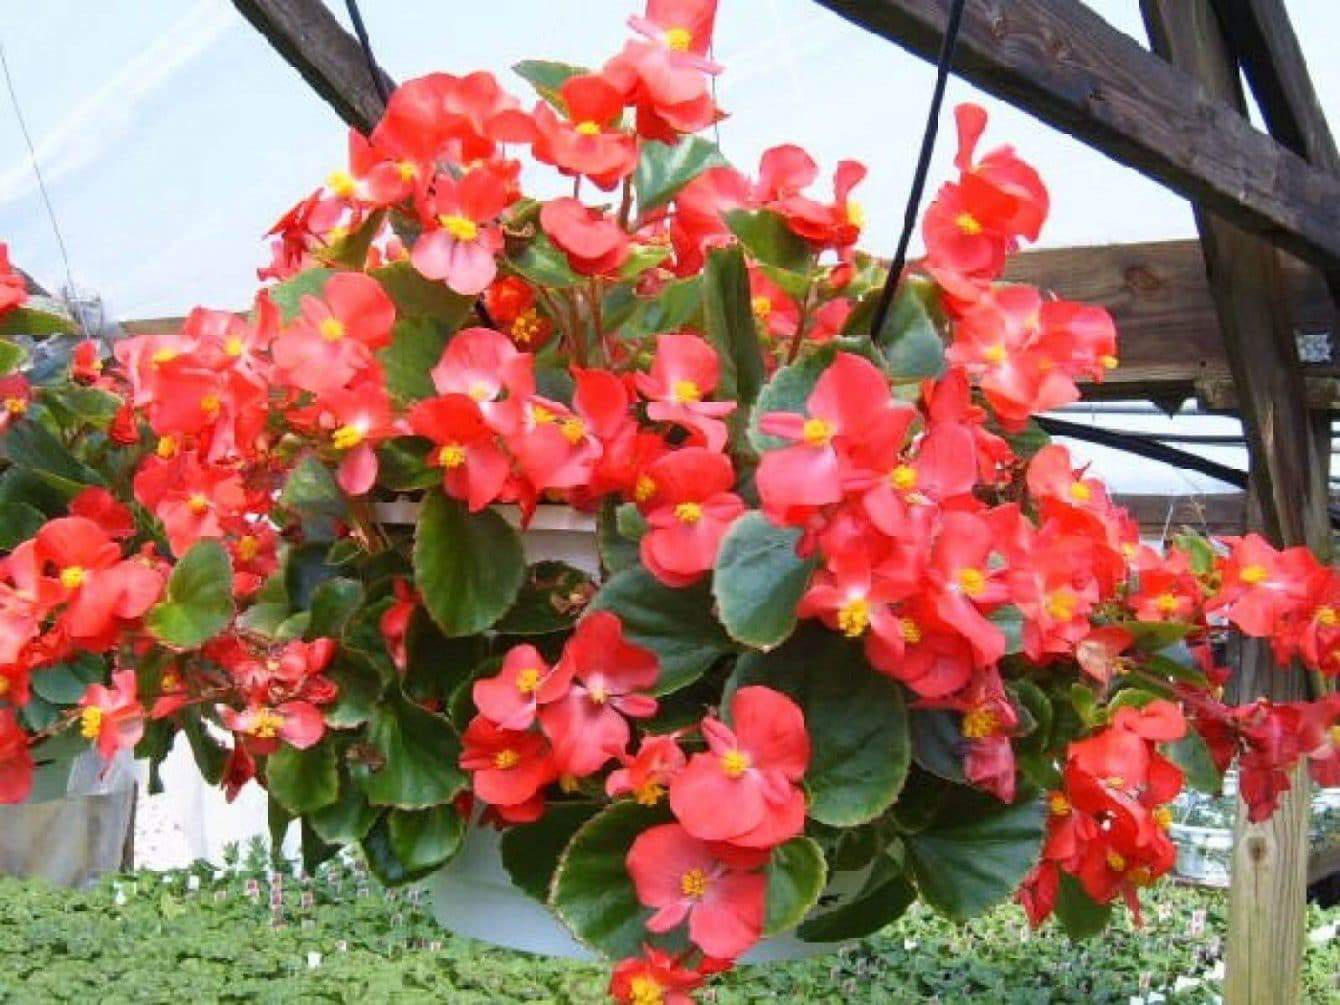 Wax Begonia Care: Do Begonias Like Sun or Shade? can begonias take full sun